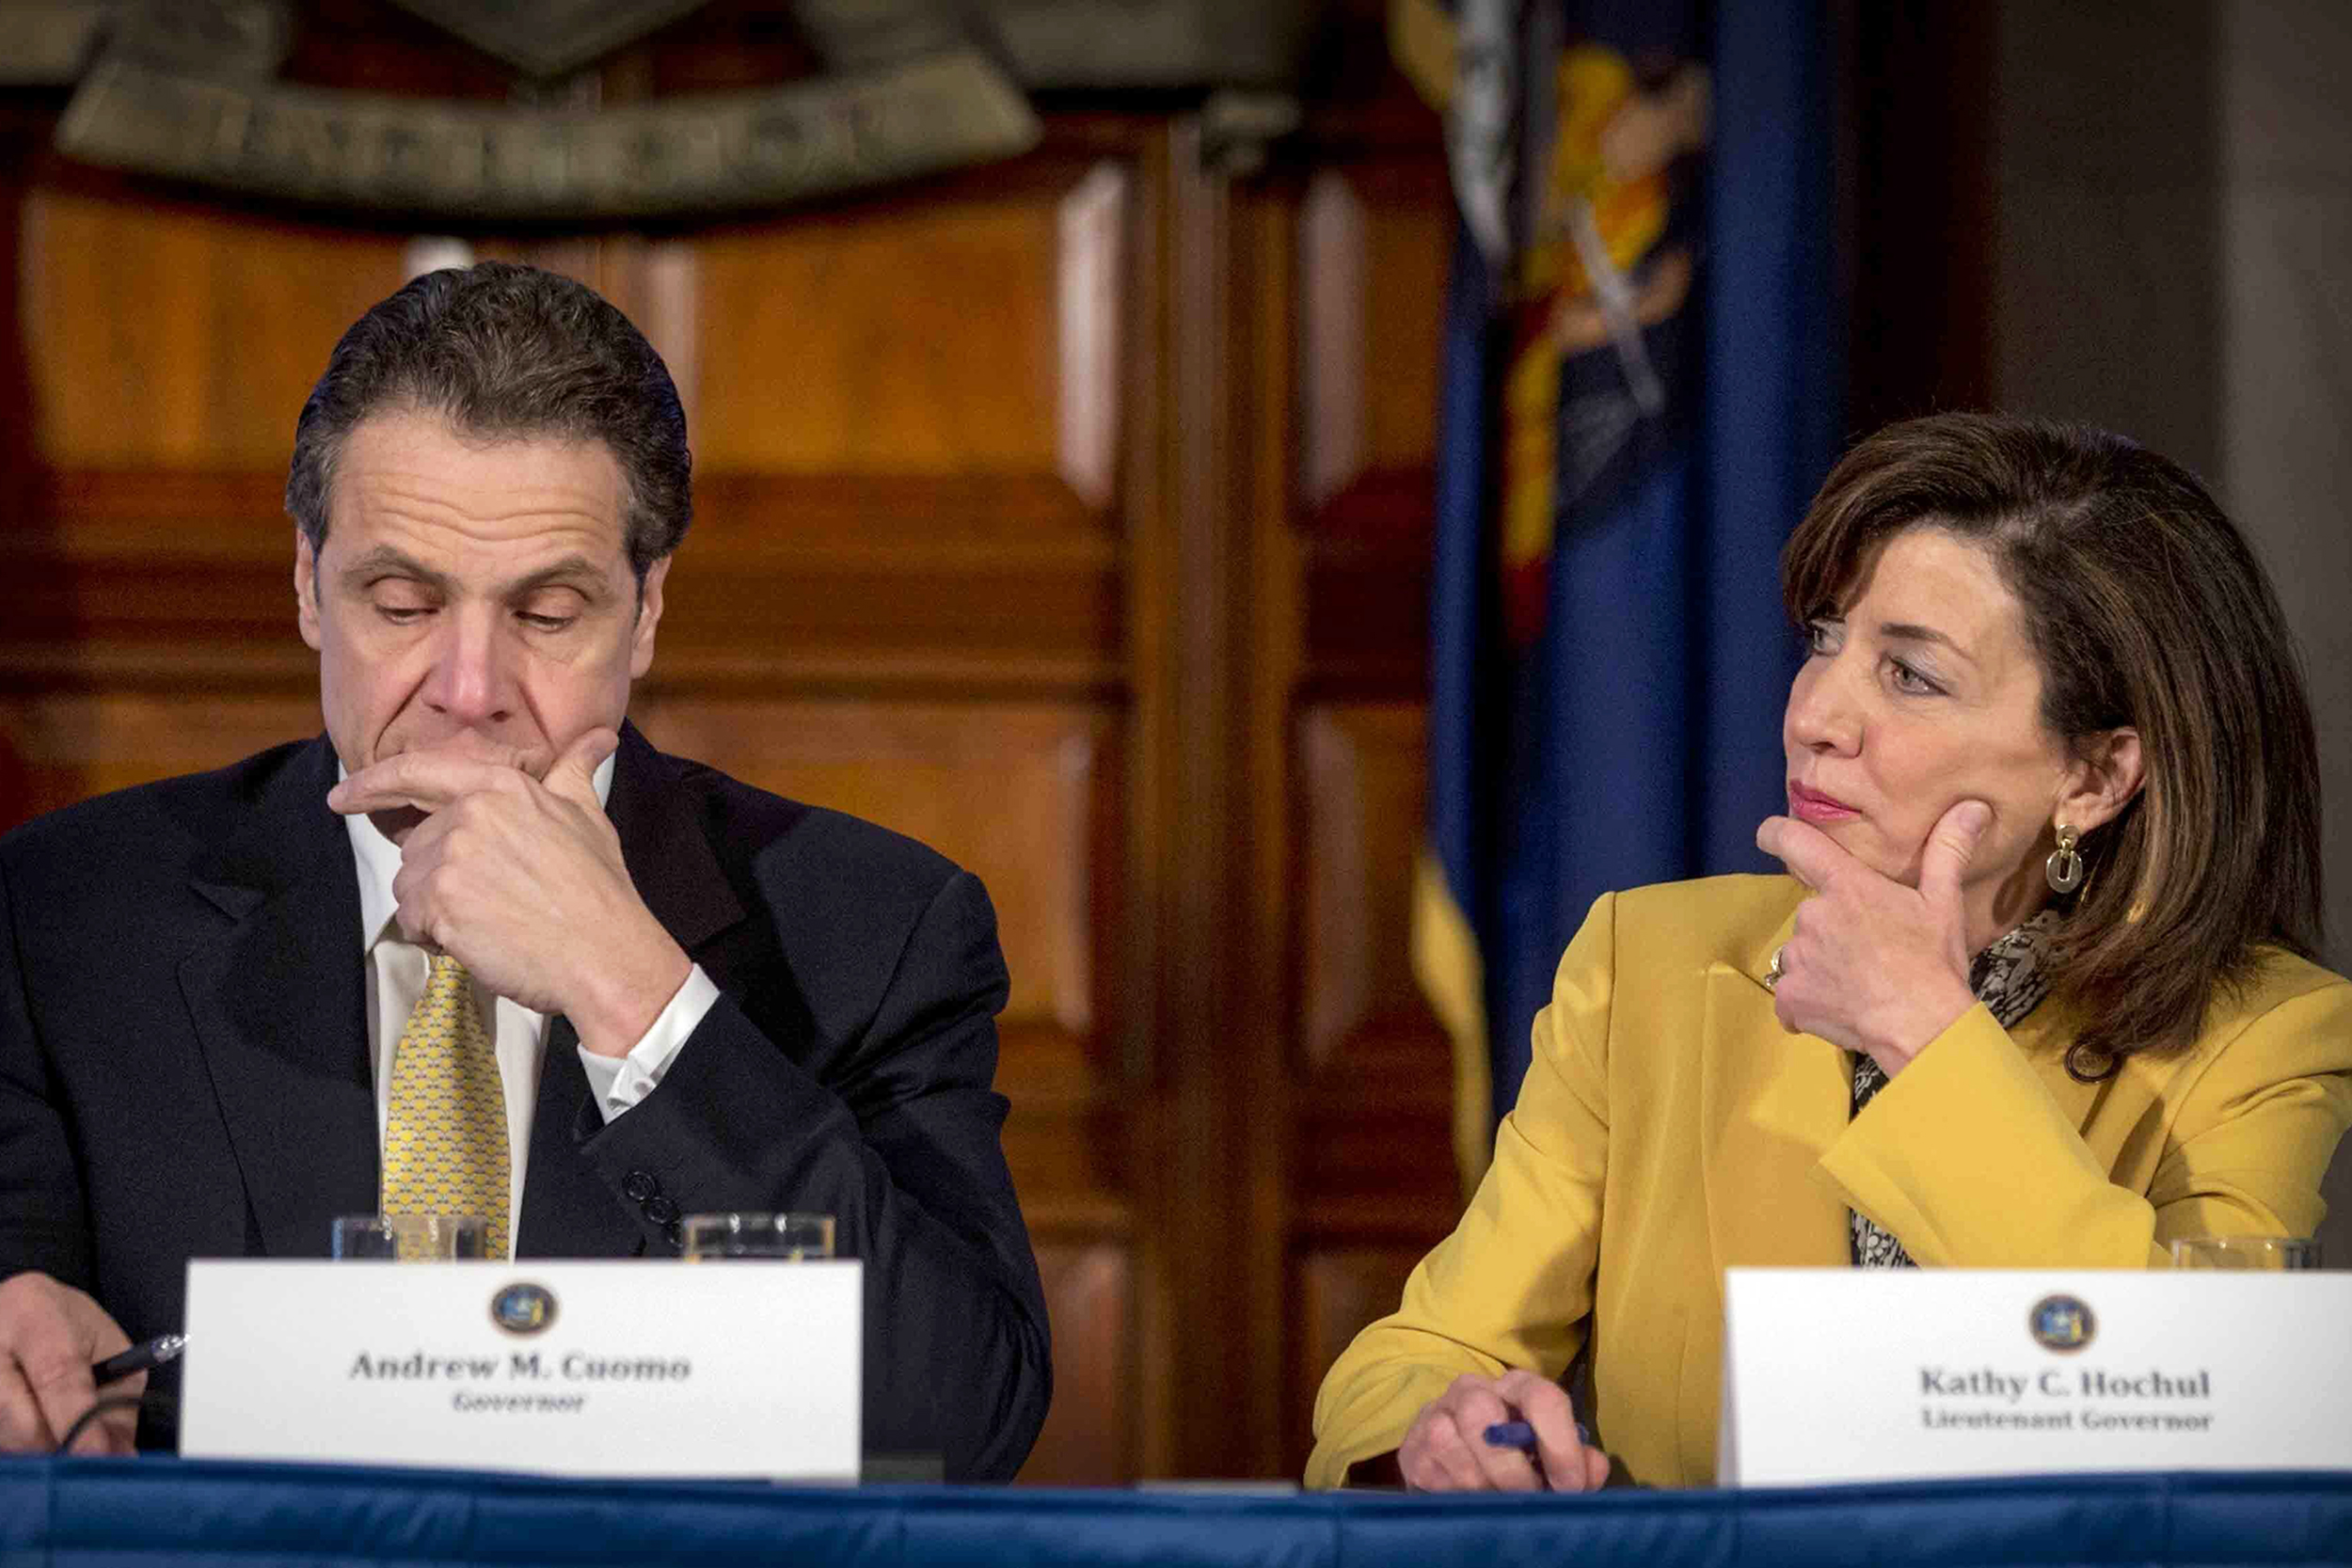 Why New York's first female governor may have a hard time winning over voters